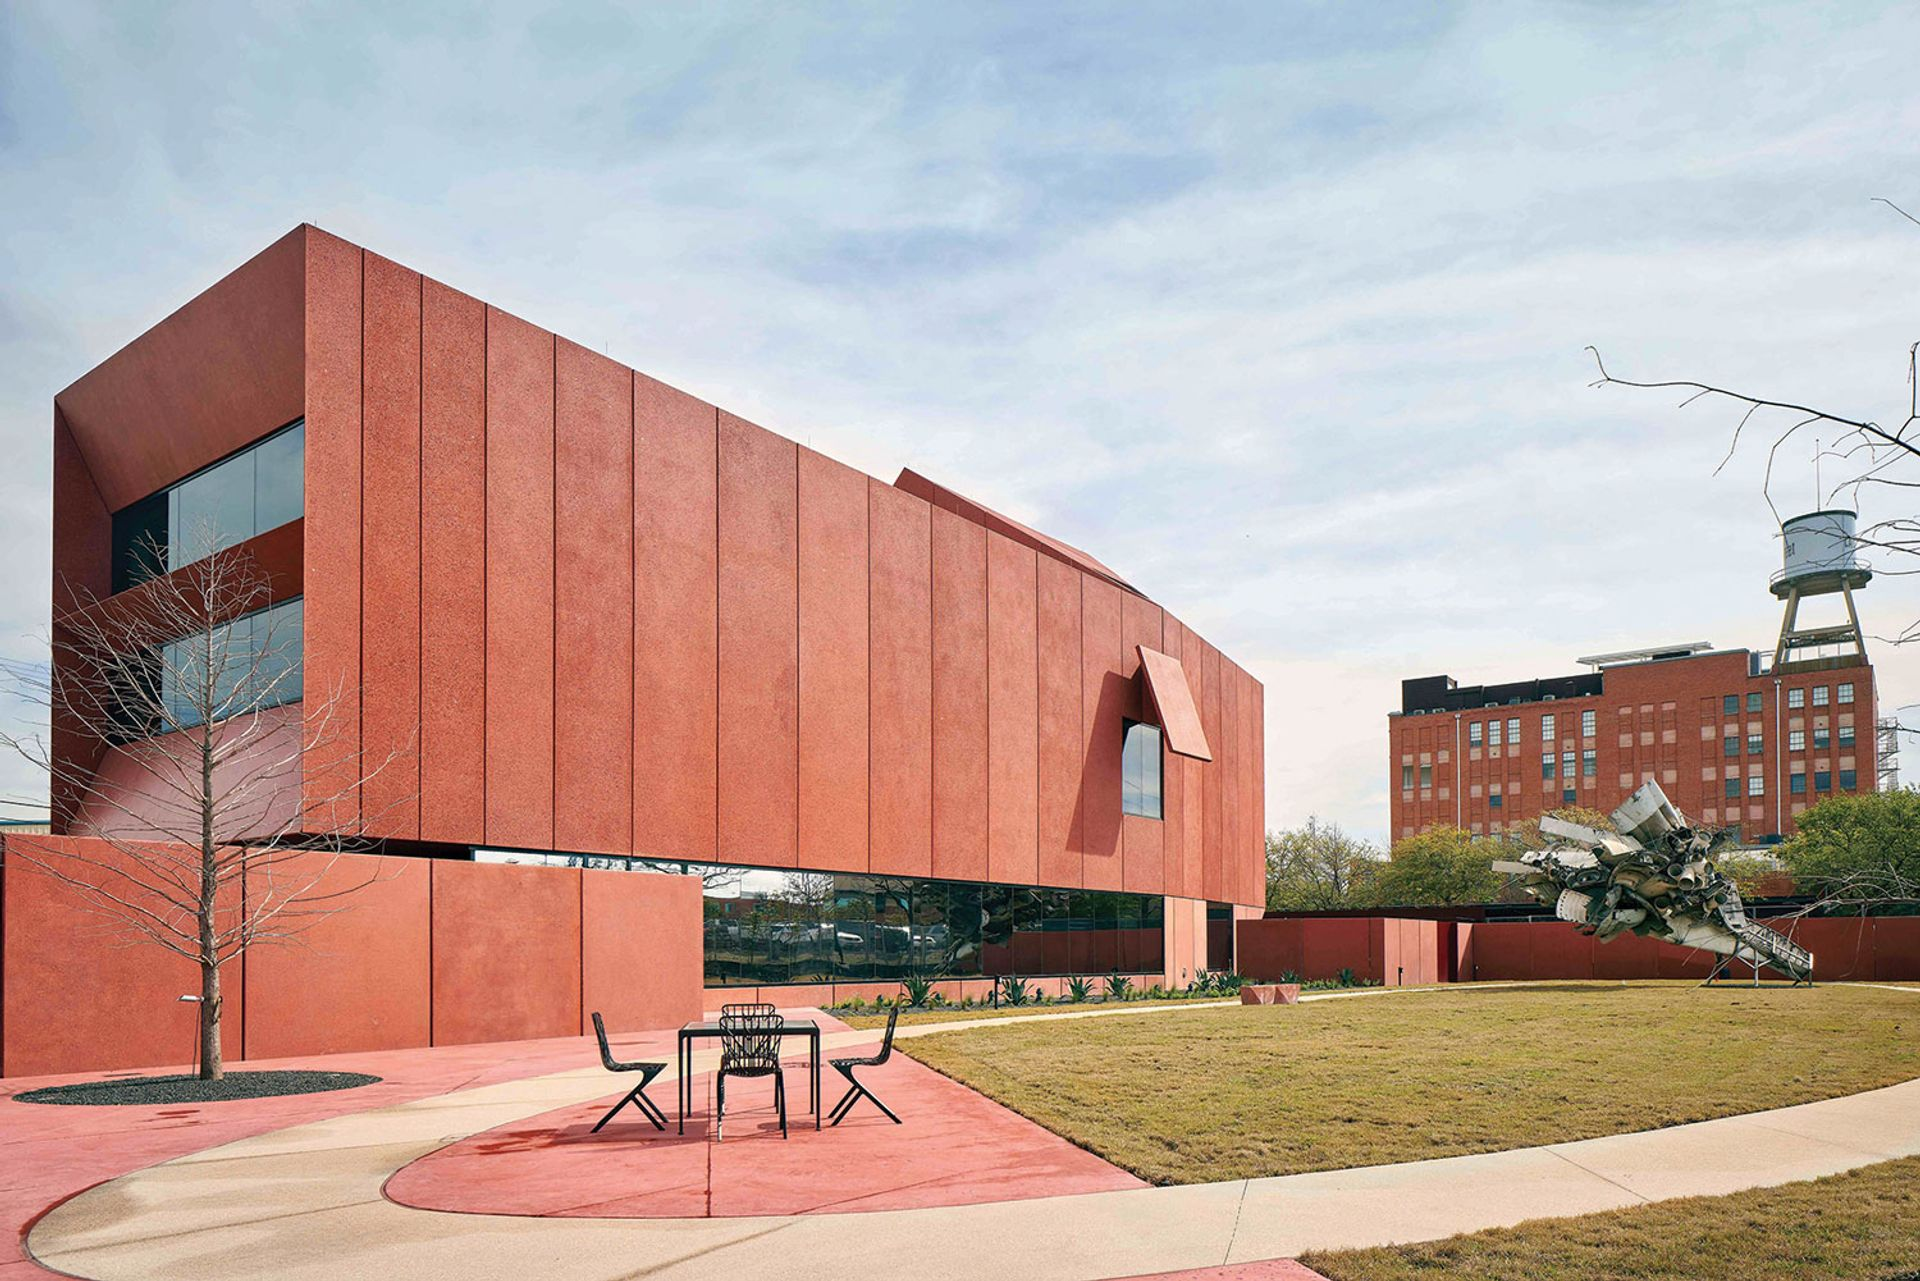 The jewel-like red building preserves the legacy of the late Linda Pace, the Texan hot-sauce heiress, collector and artist Dror Baldinger; courtesy of Ruby City and Adjaye Associates